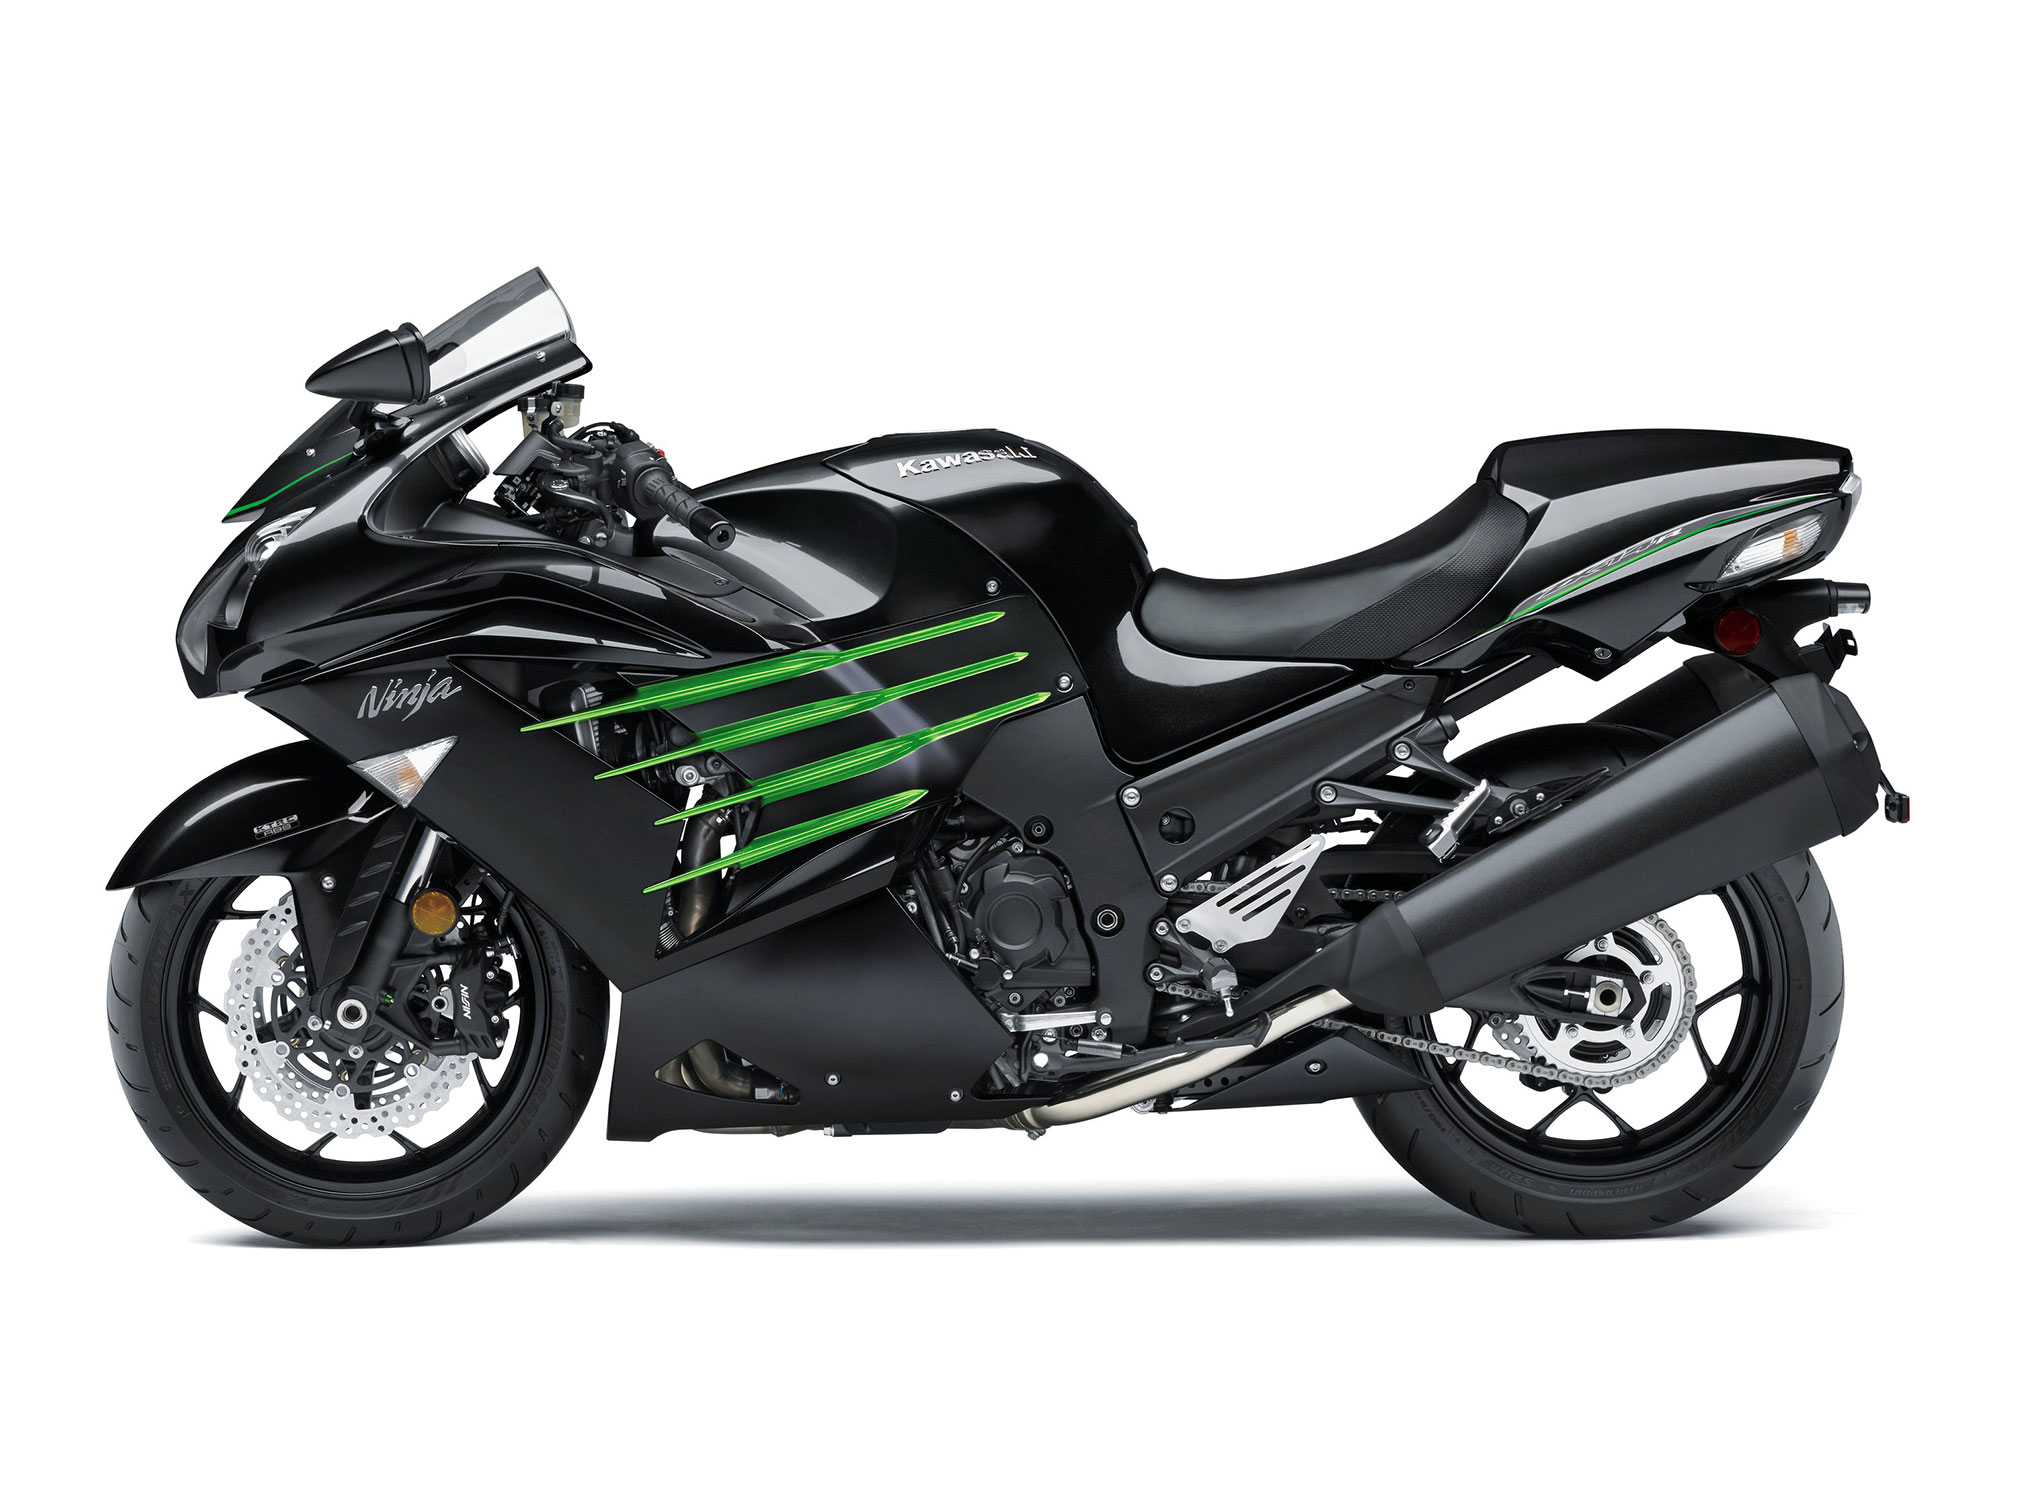 2017 Kawasaki Ninja ZX-14R ABS Review